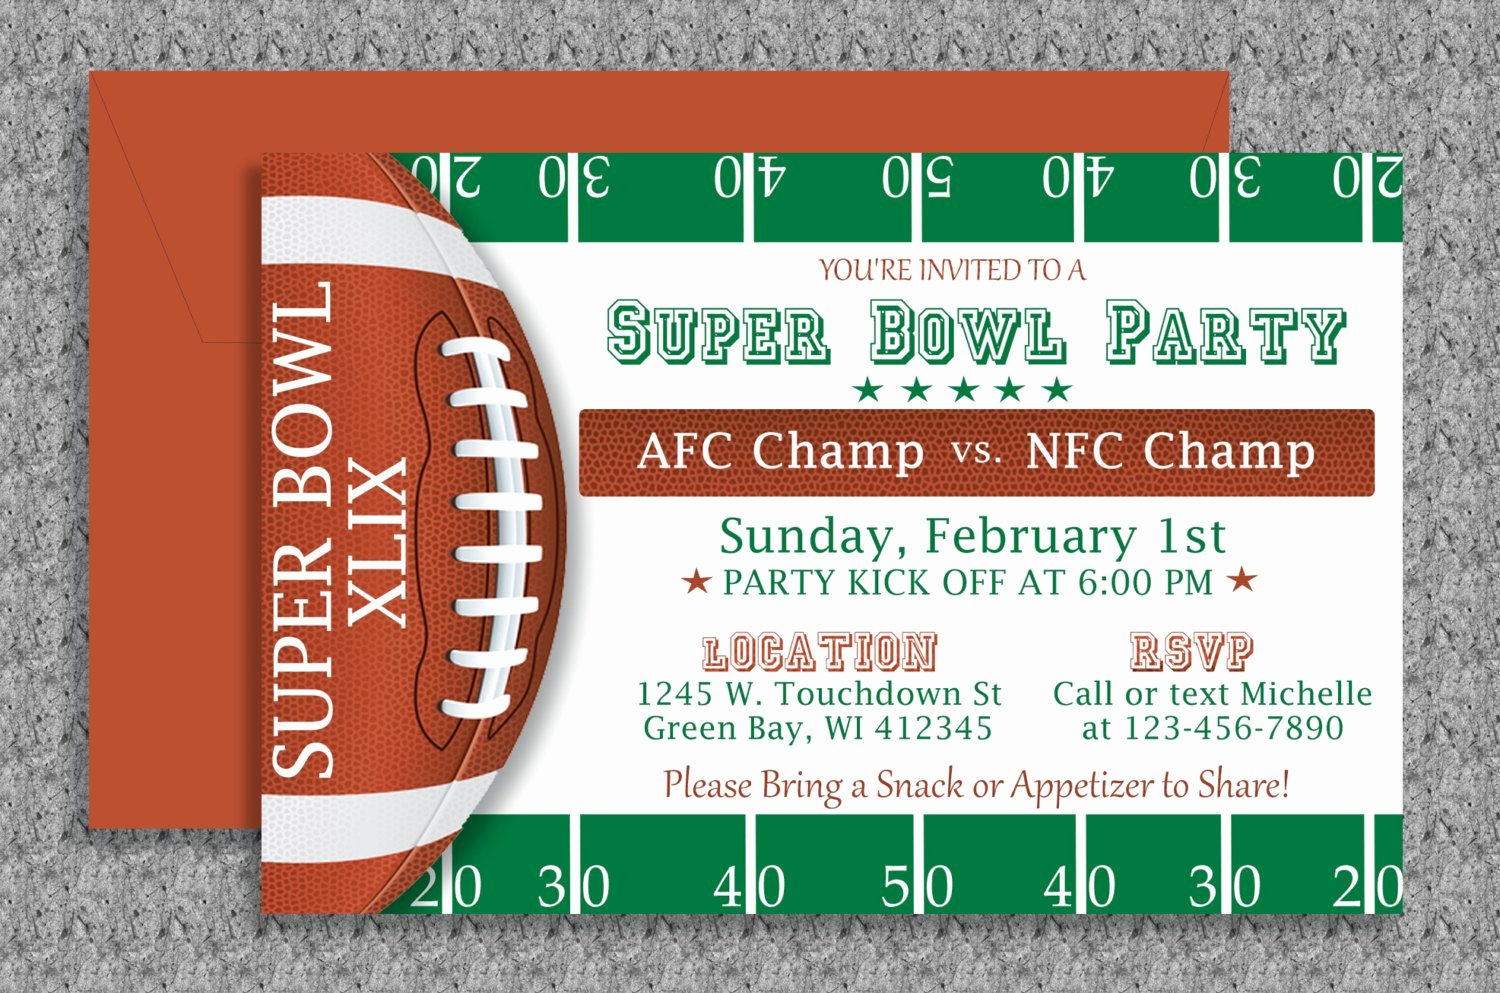 Superbowl Party Invitation Template Awesome Super Bowl Invitation Editable Template by Mydiydesigns On